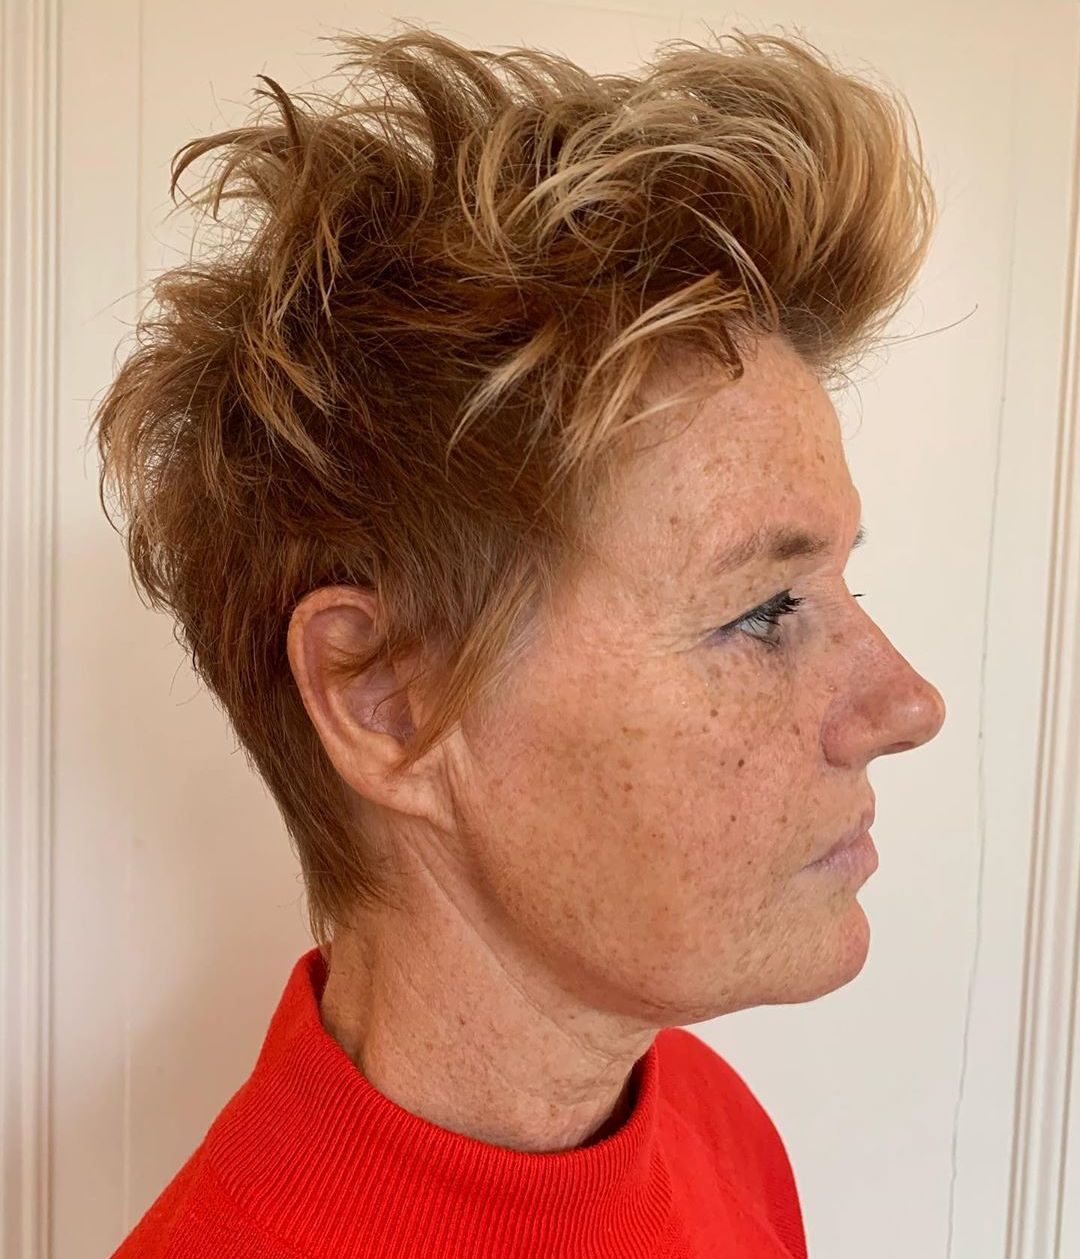 60 and Older Short Spiky Hairstyle